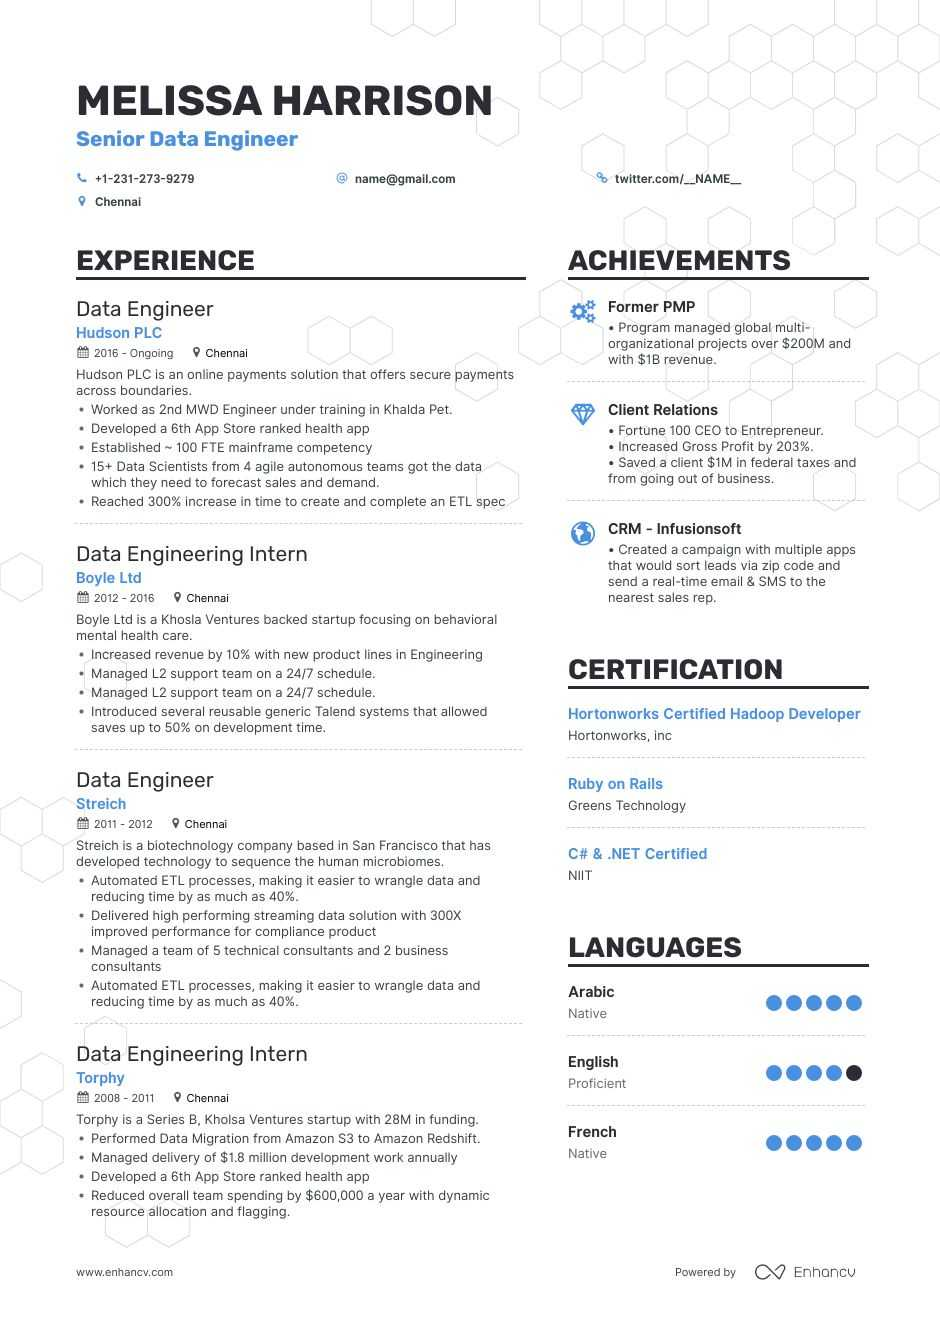 data engineer resume examples do and don ts for enhancv software purdue owl objective Resume Software Engineer Resume 2020